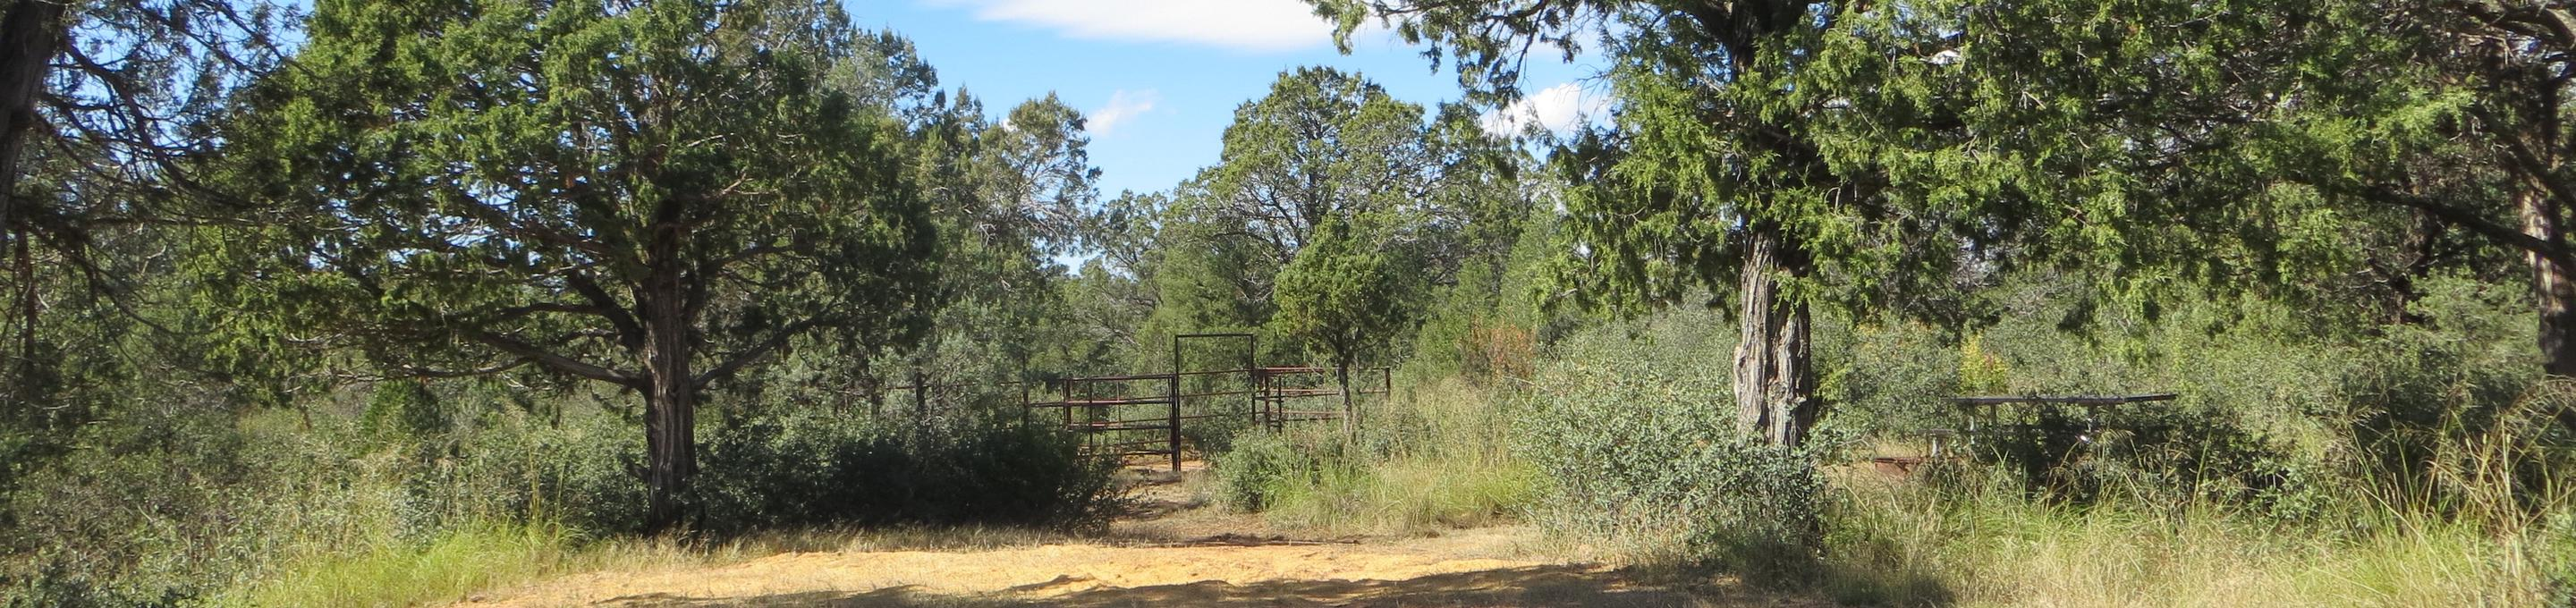 Houston Mesa, Horse Camp site #10 featuring entrance and parking, picnic area and horse corral.